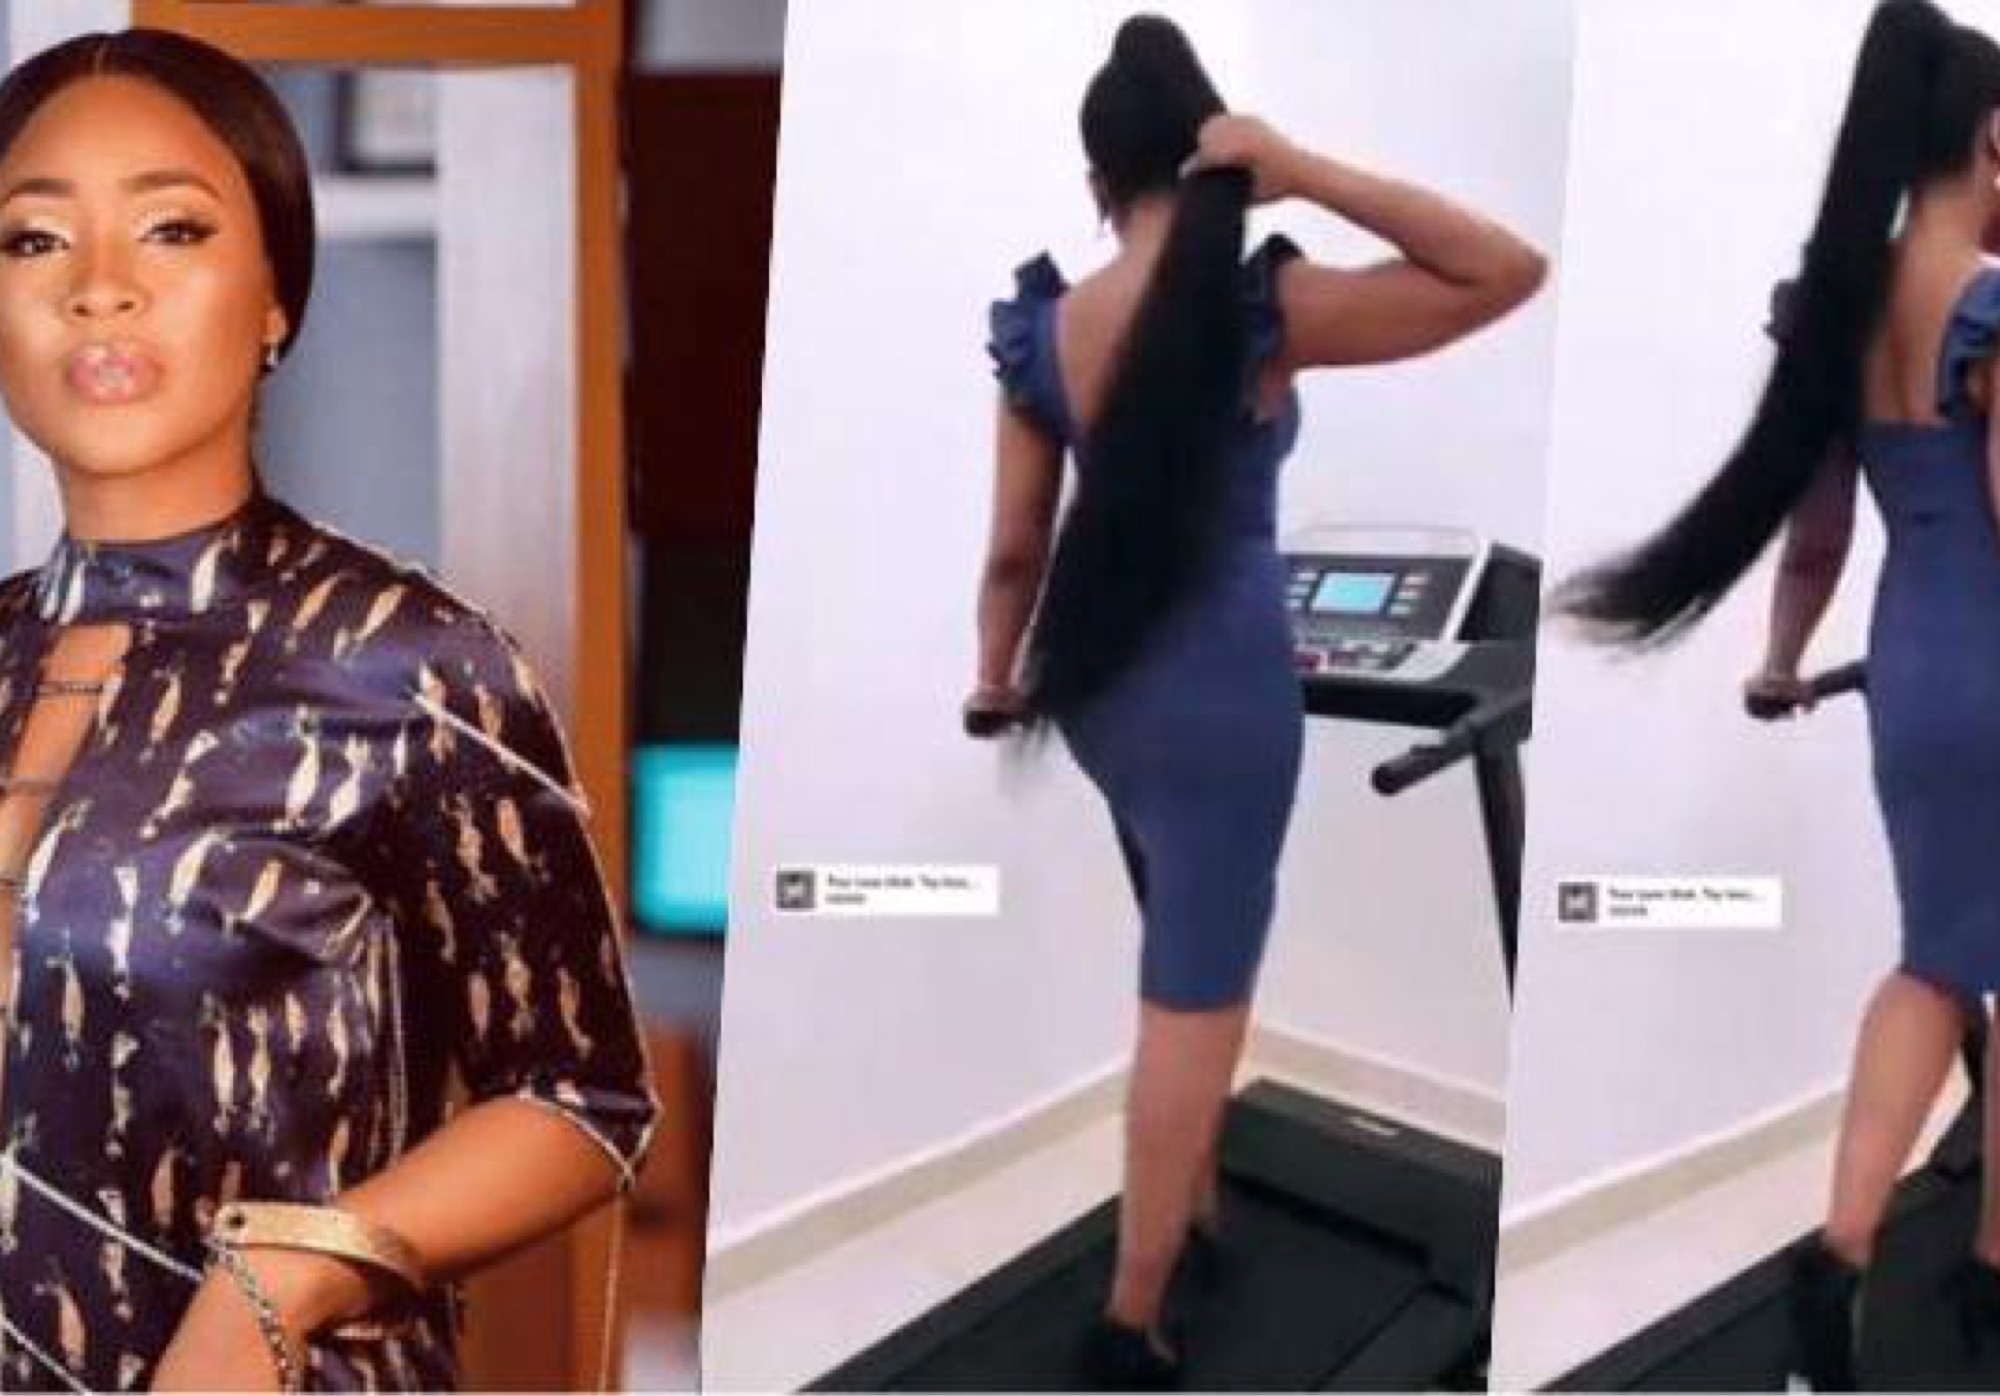 BBNaija's Erica Sparks Viral Challenge After She Test Runs Treadmill Gift From Fans